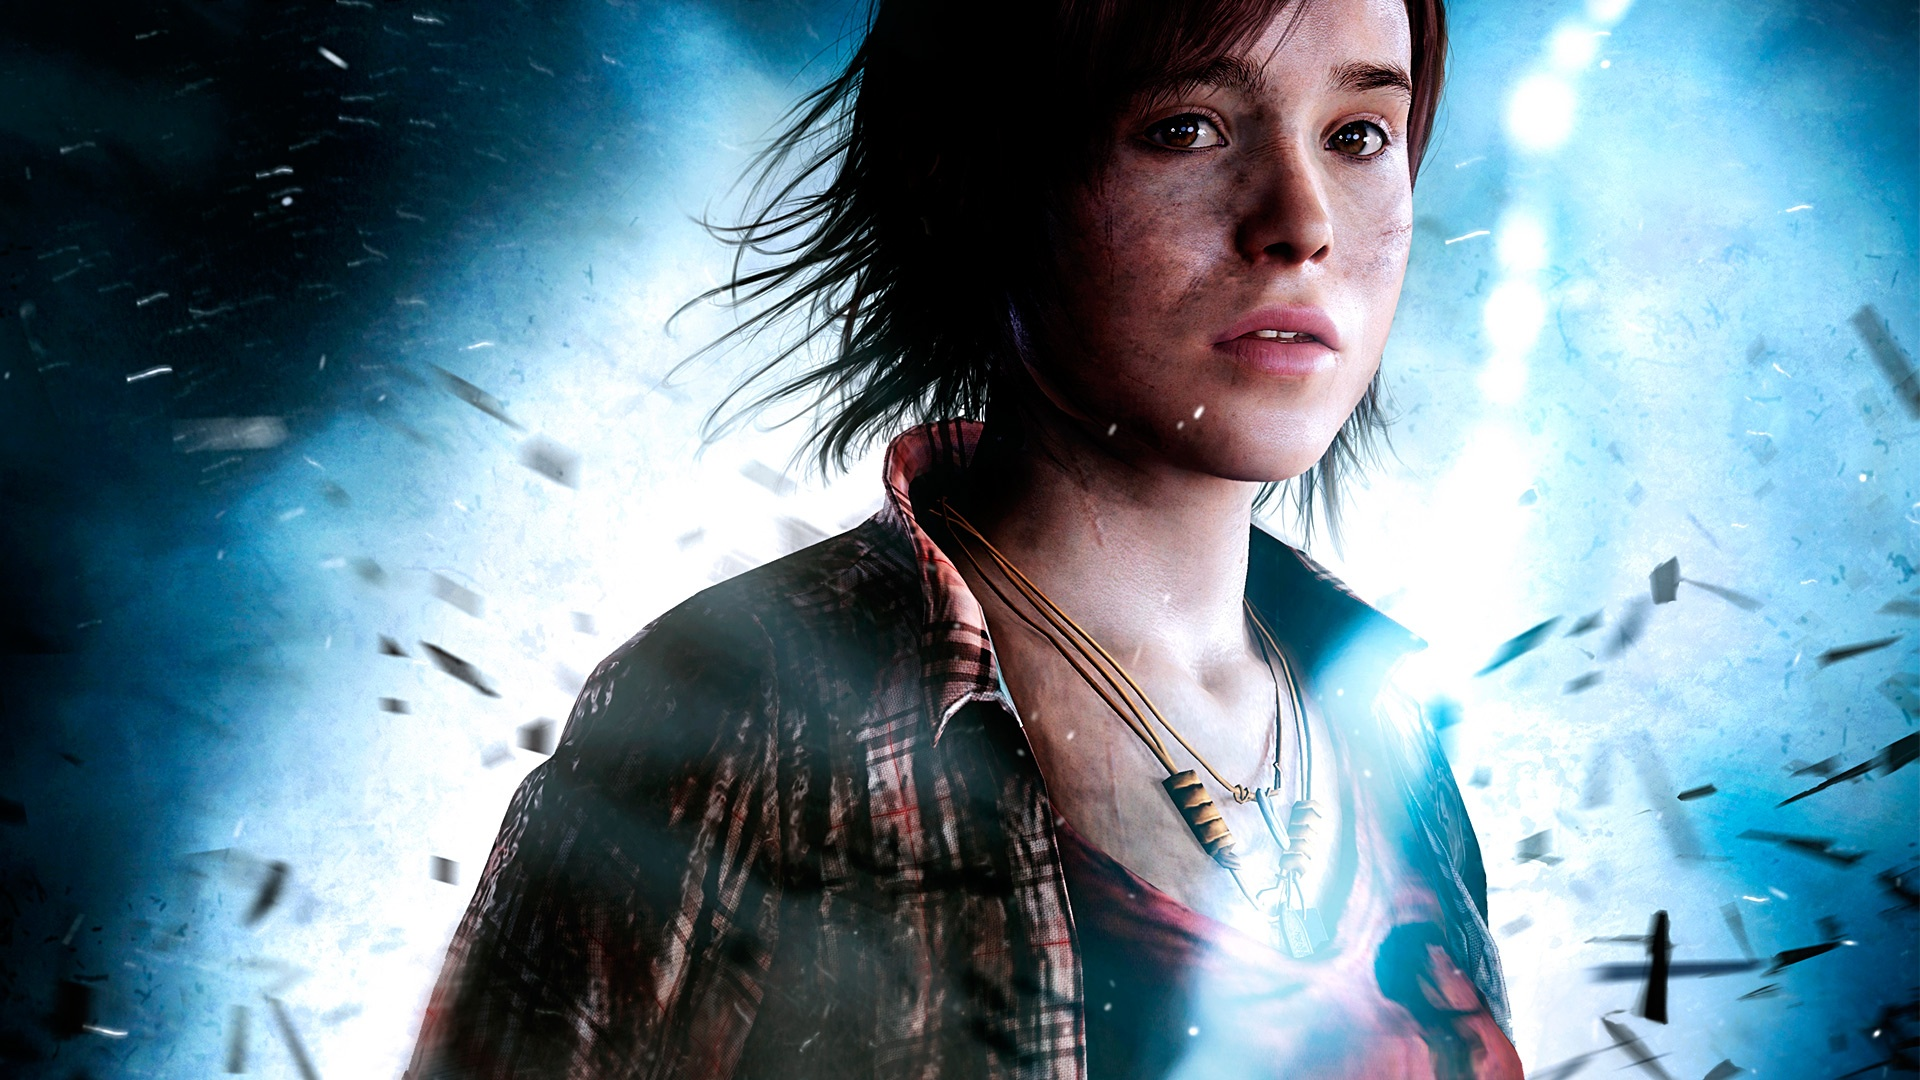 ellen-page-beyond-two-souls-1920x1080